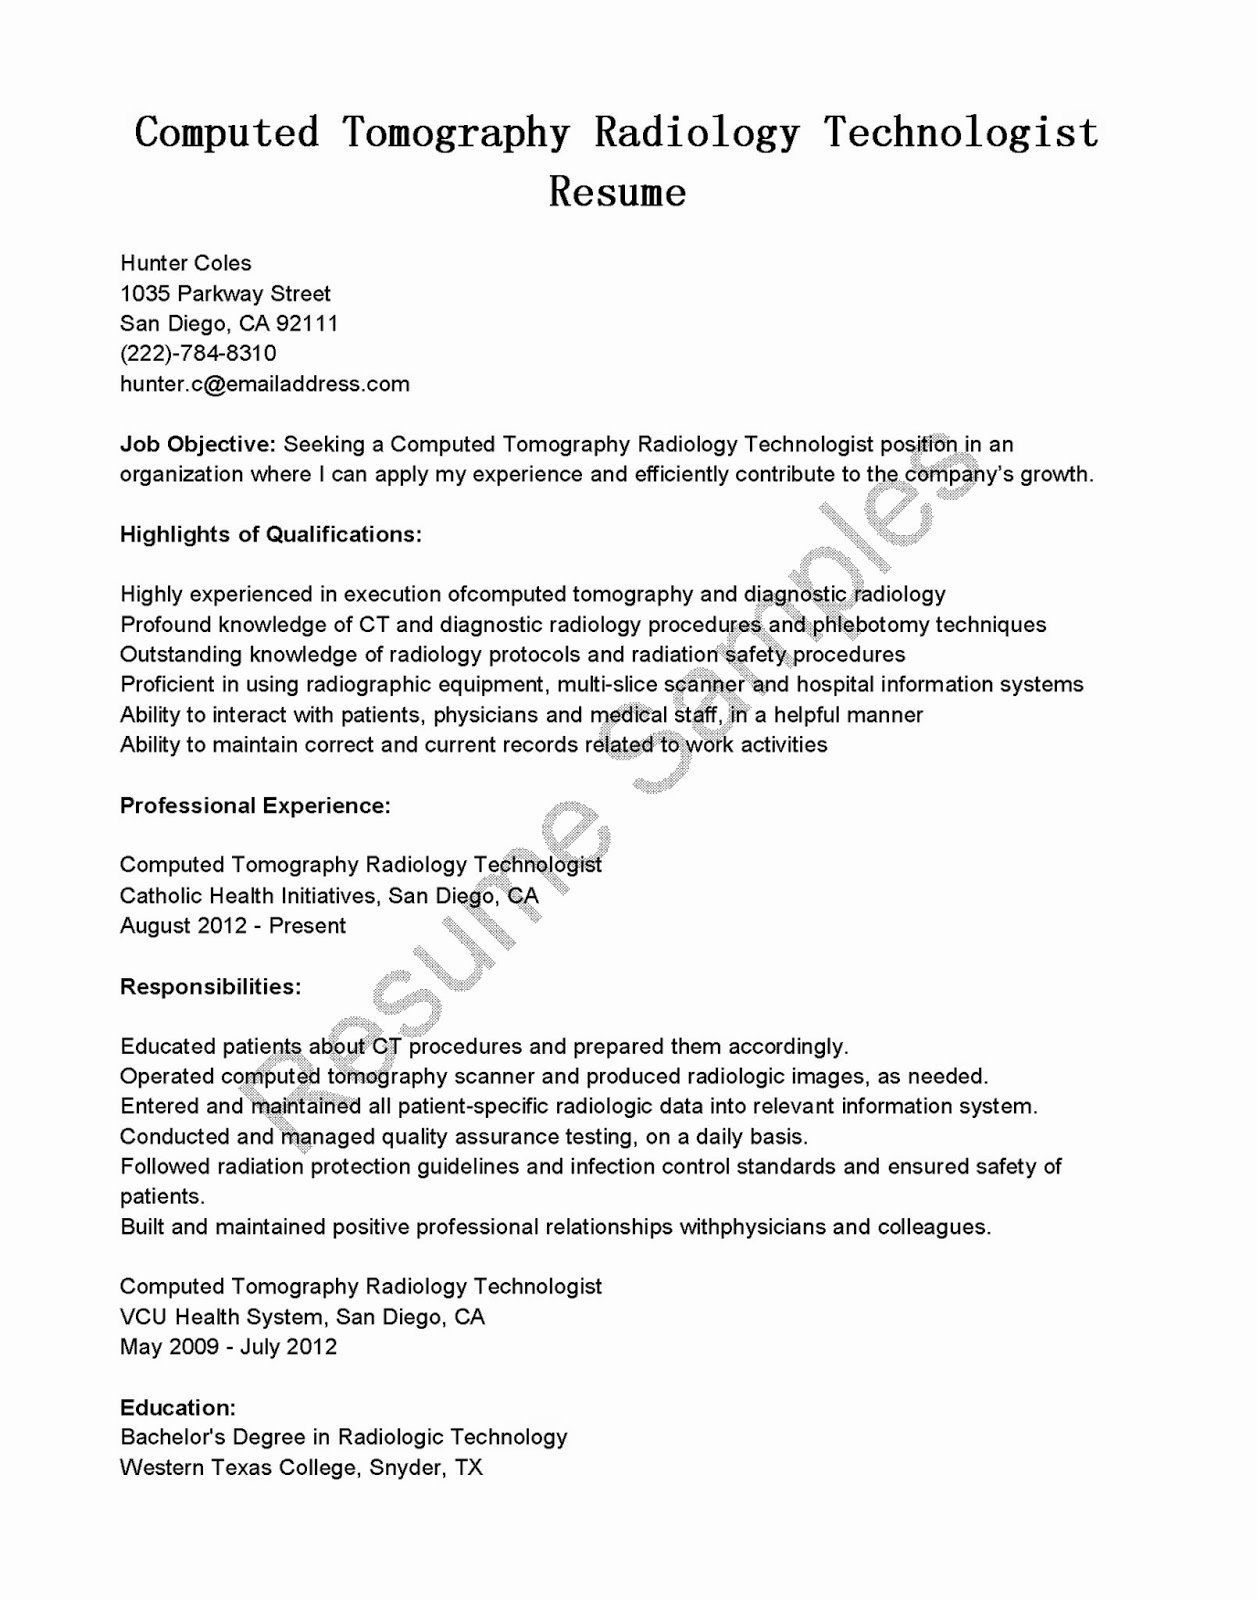 Texas Tech Letter Of Recommendation Elegant Resume Samples Puted tomography Radiology Technologist